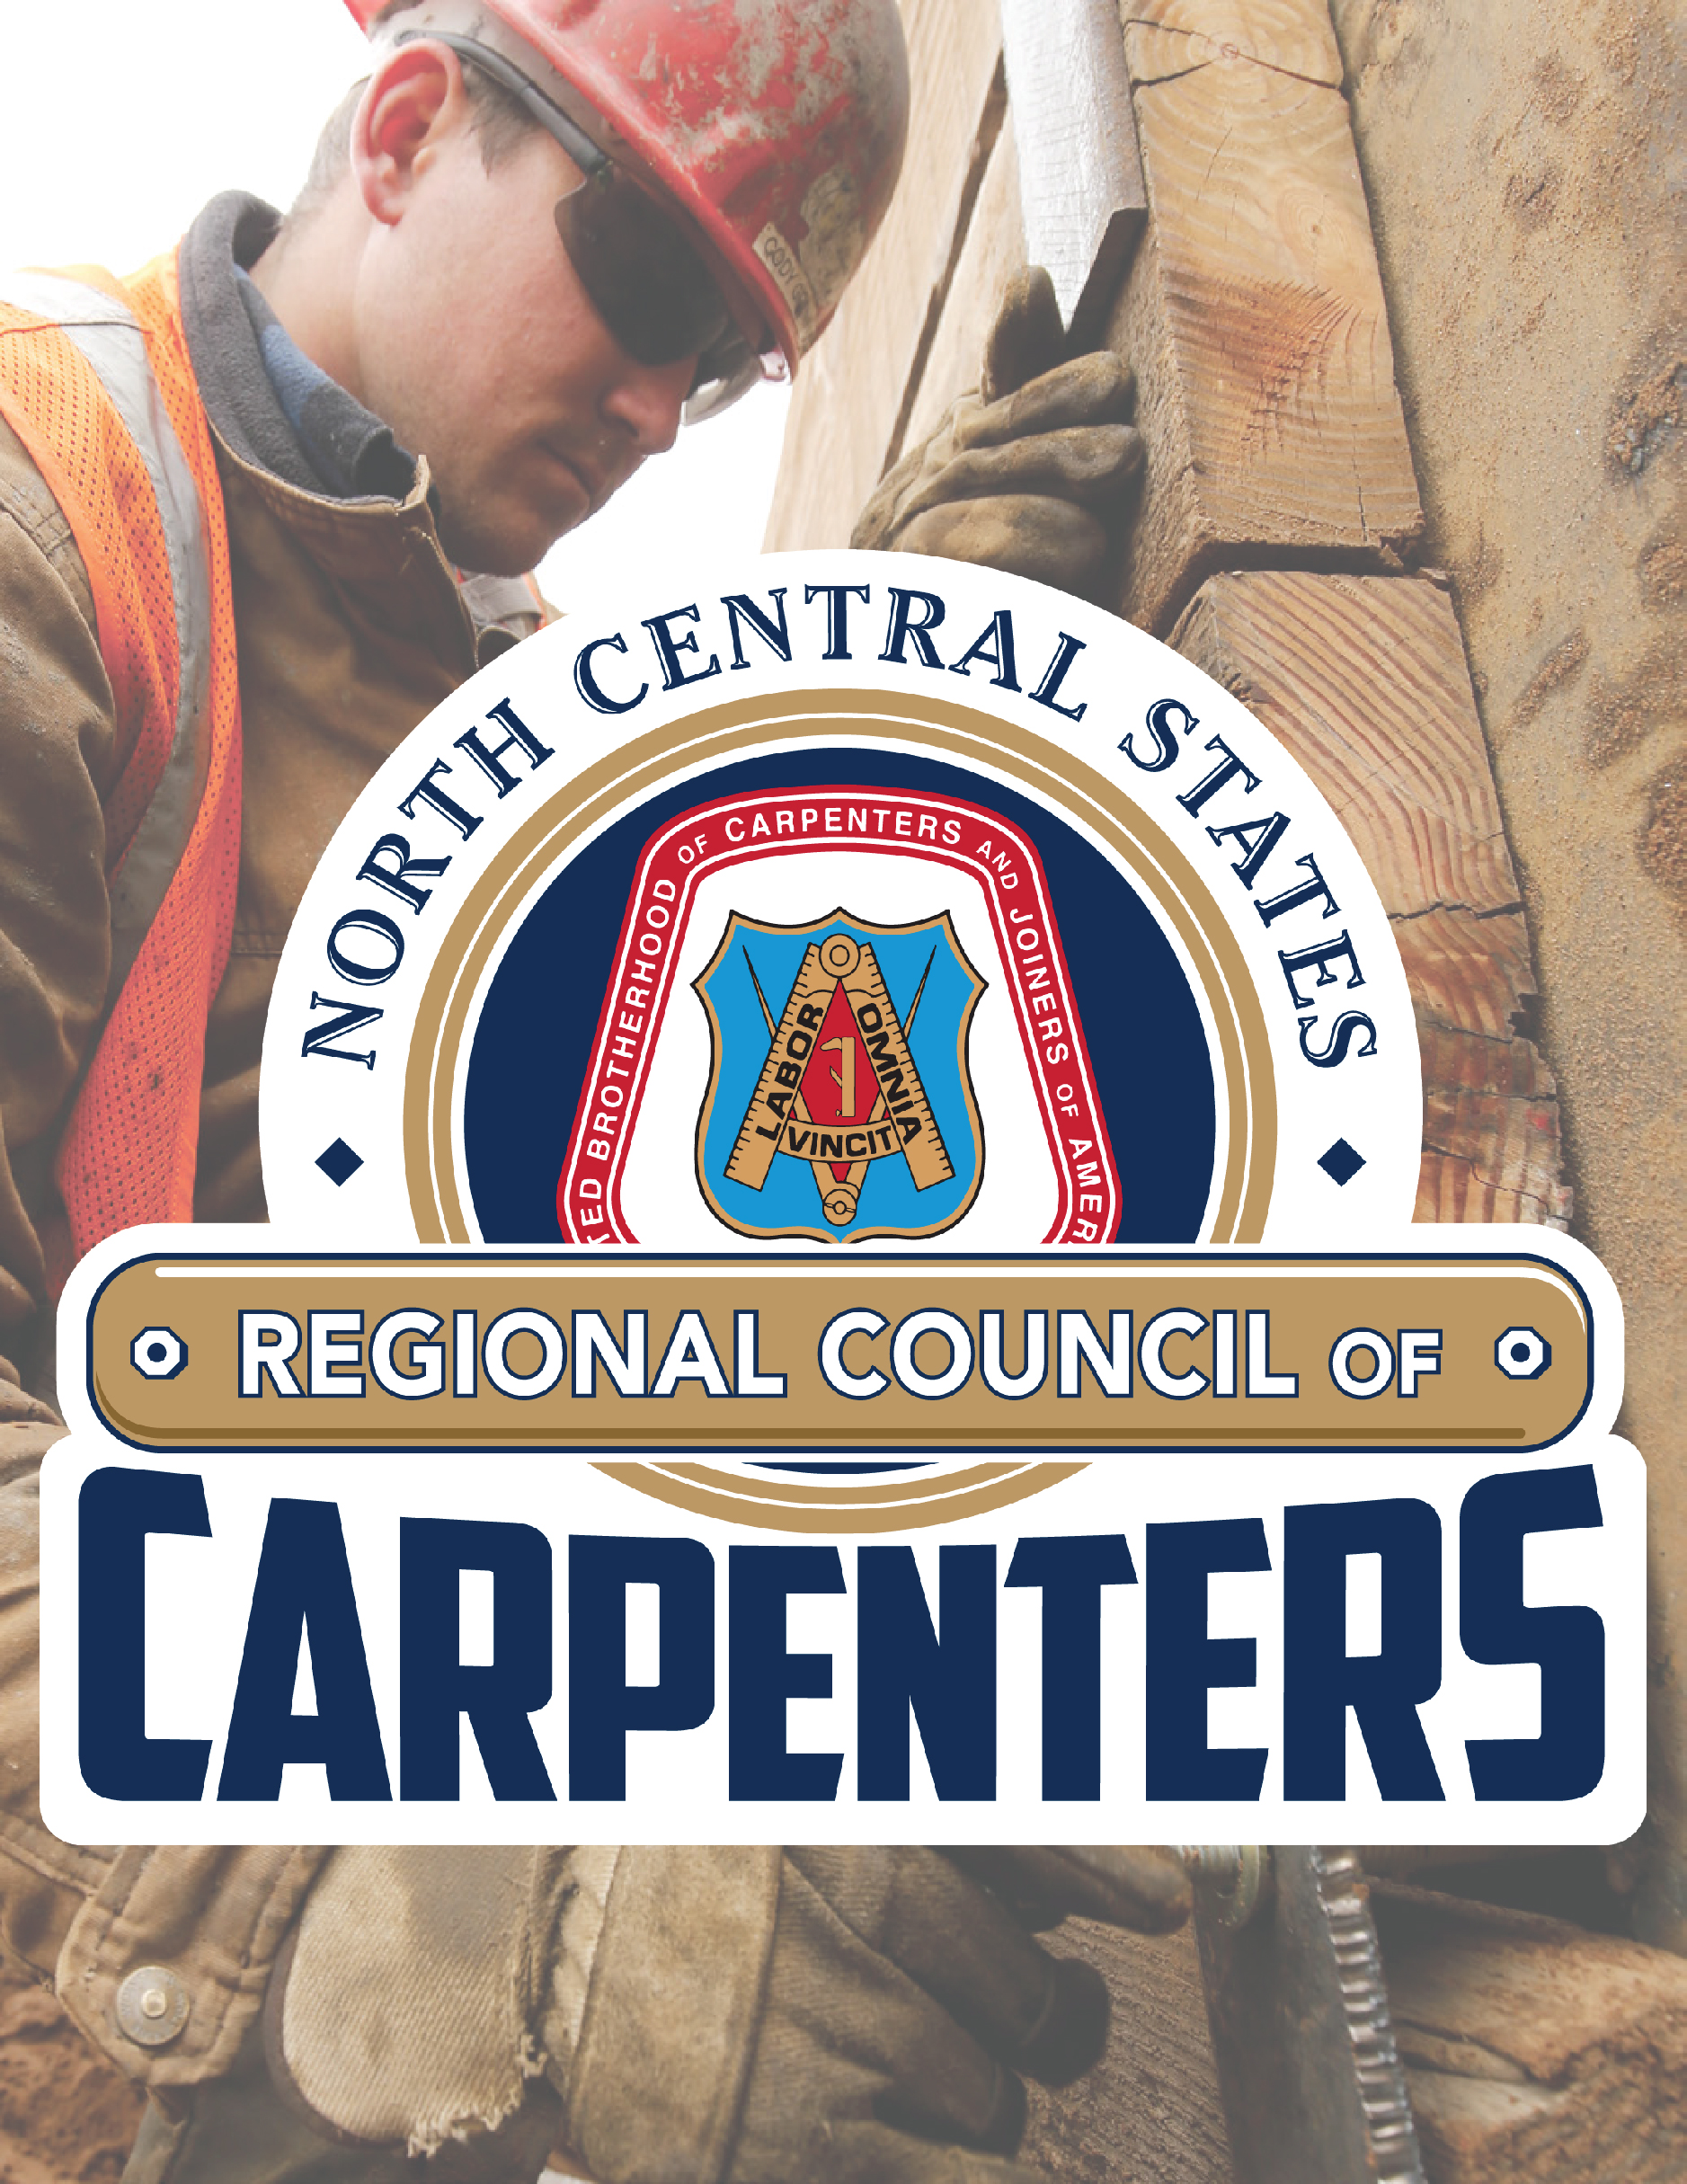 "North Central States Regional Council of Carpenters - ""Jenna reflects the Carpenter values of job fairness, family sustaining wages and benefits, and dignity in retirement. She has a good grasp on the city's infrastructure needs, the construction industry, and the craftsmanship that our highly-skilled, professionals provide. We look forward to working with her to build a better Bloomington.""-Adam Duininck, Director of Government Affairs, NCSRCC"